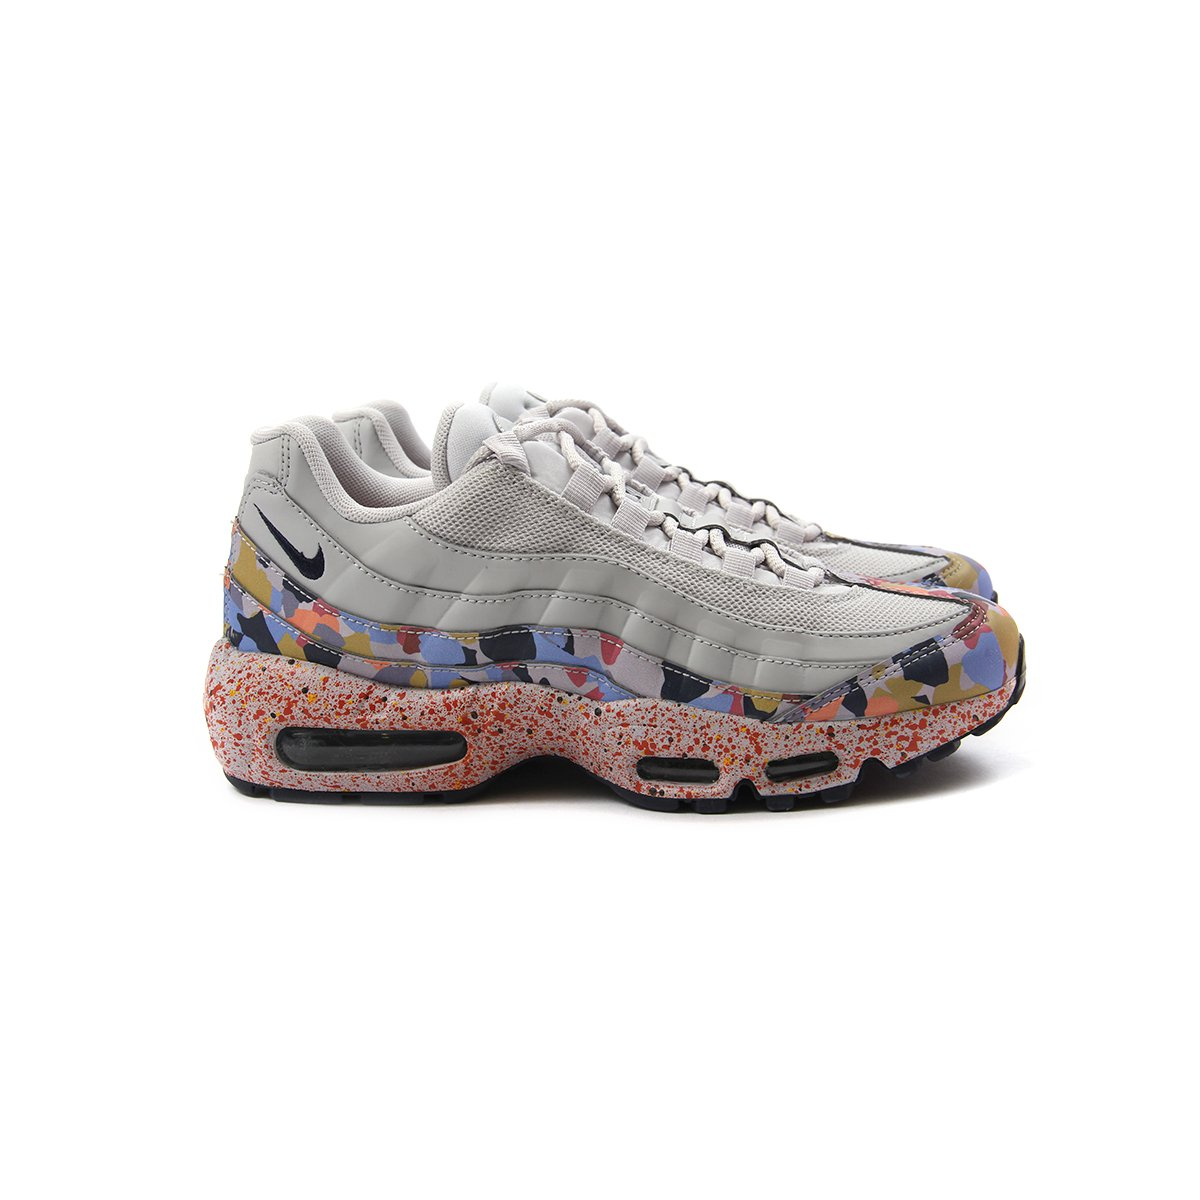 2020 For Sale Women's Nike Air Max 97 Ultra SE Tea Berry